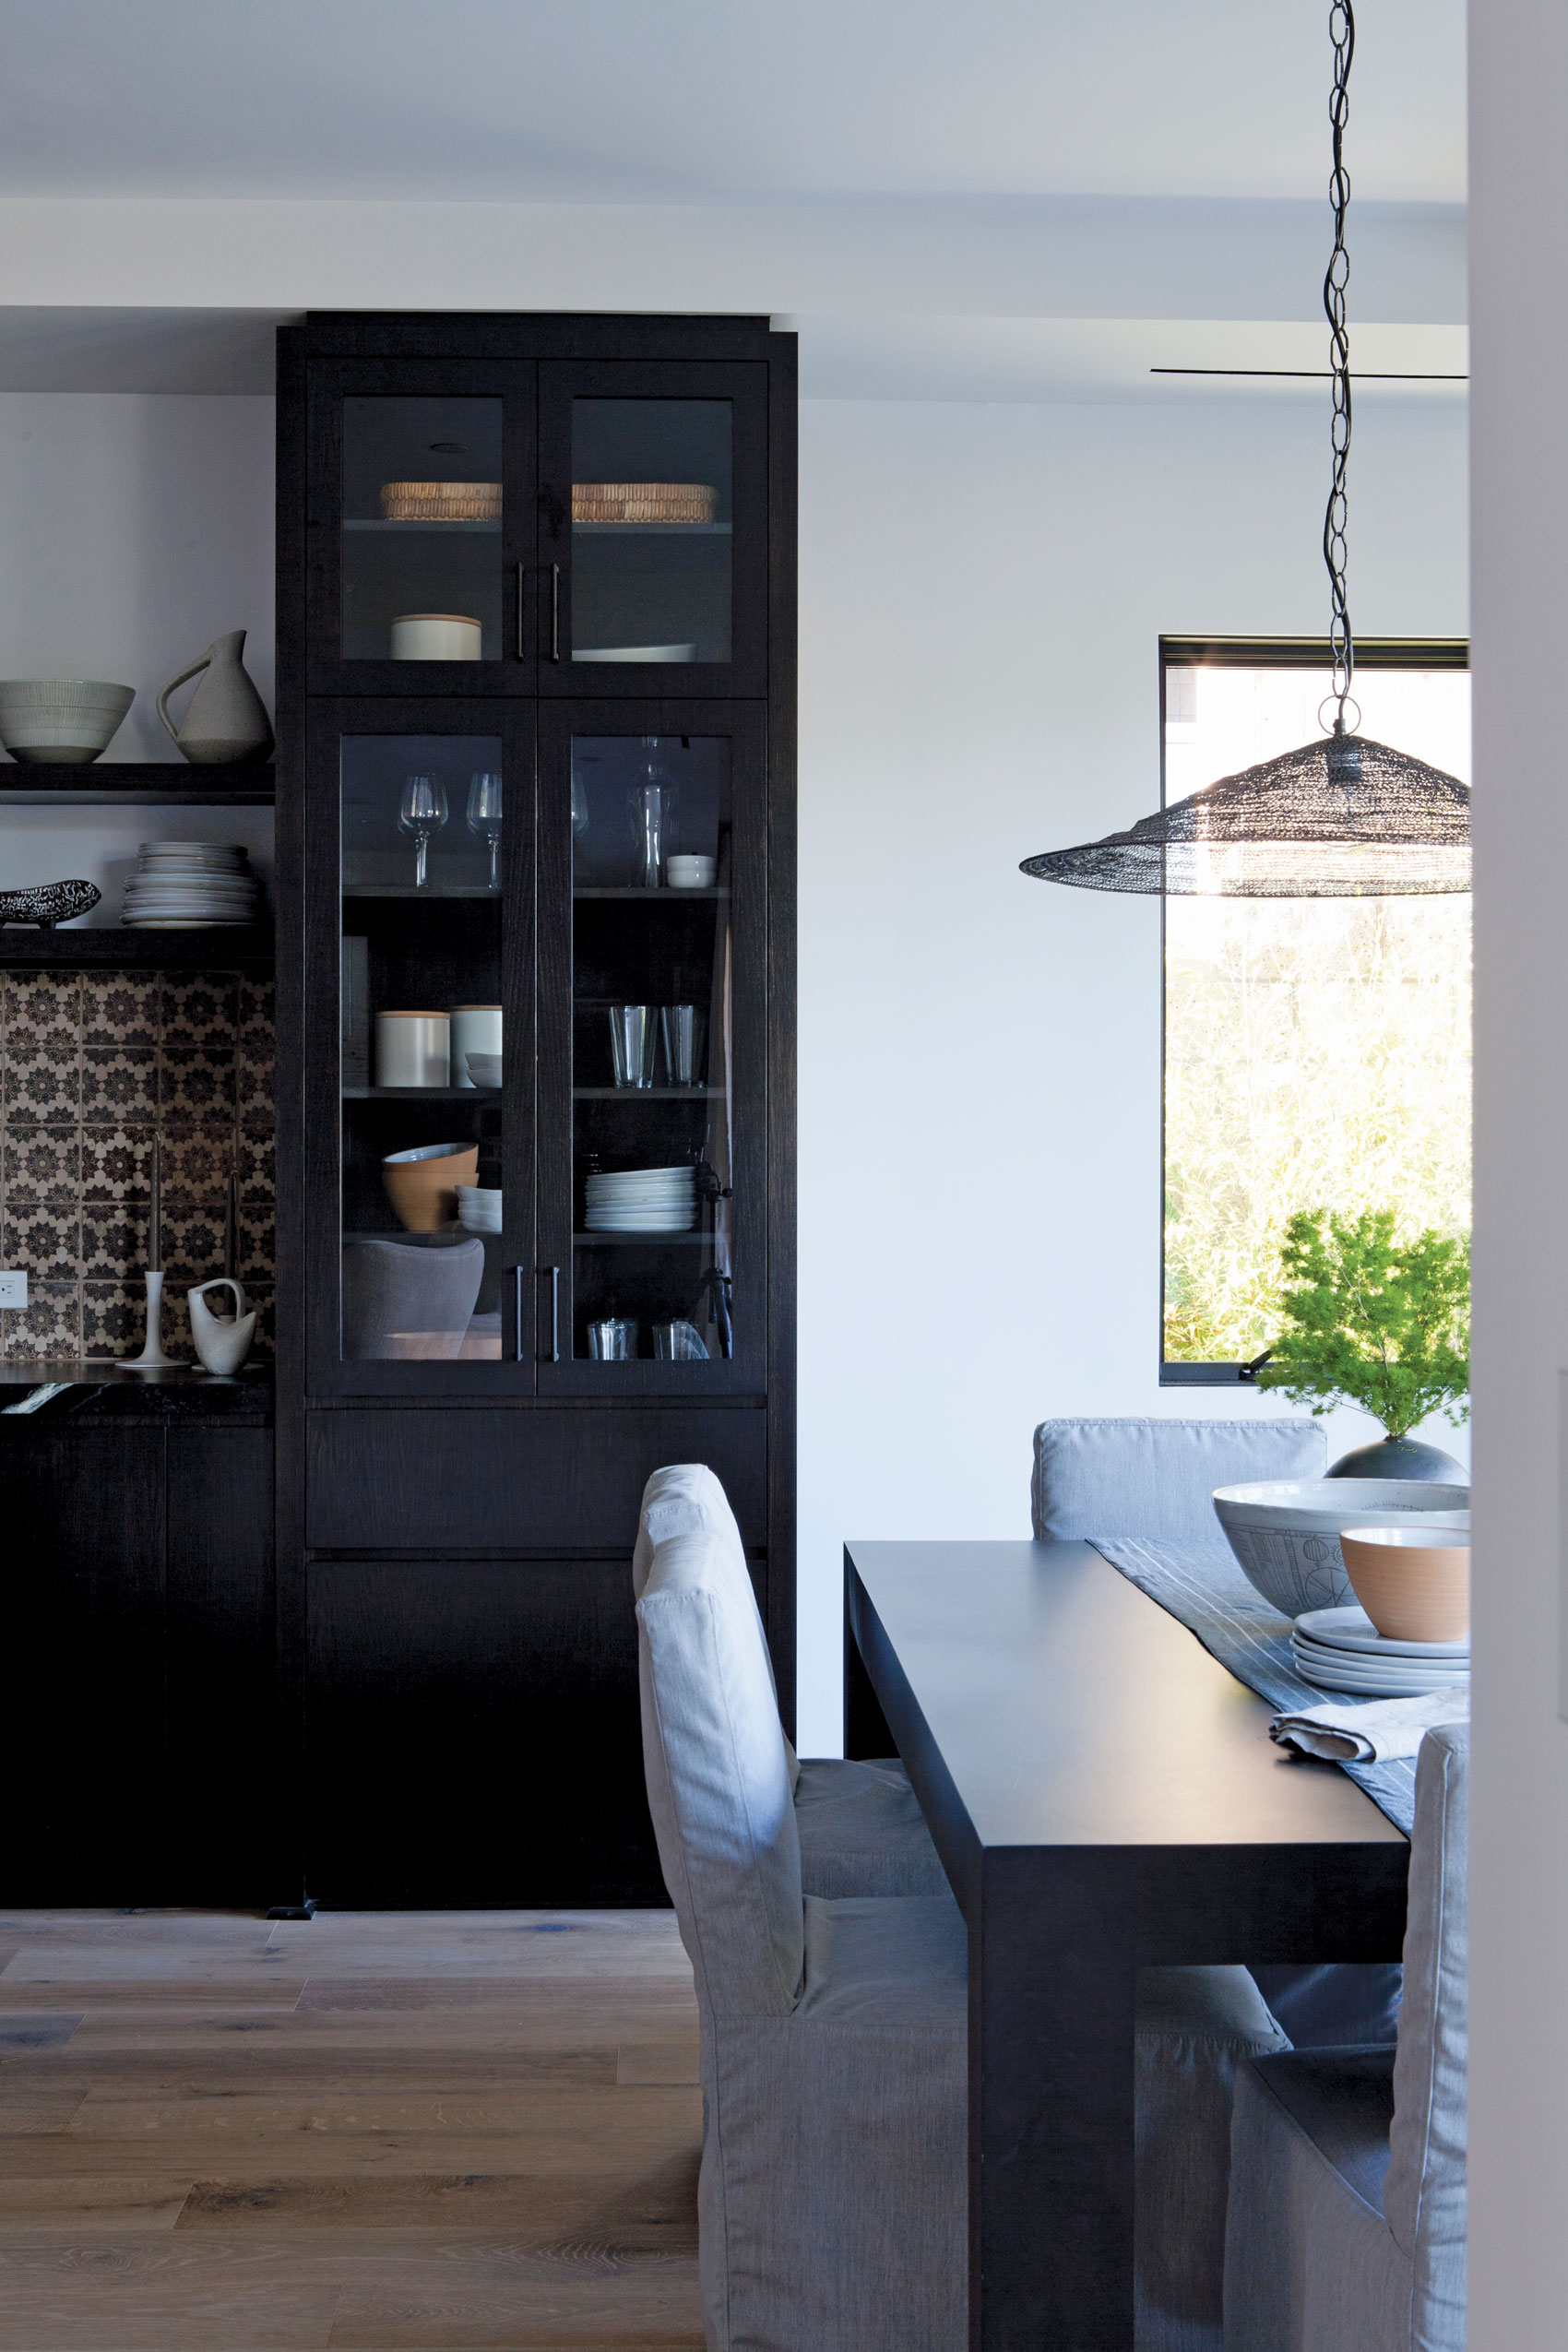 Bright Kitchen with dark accents in dining room